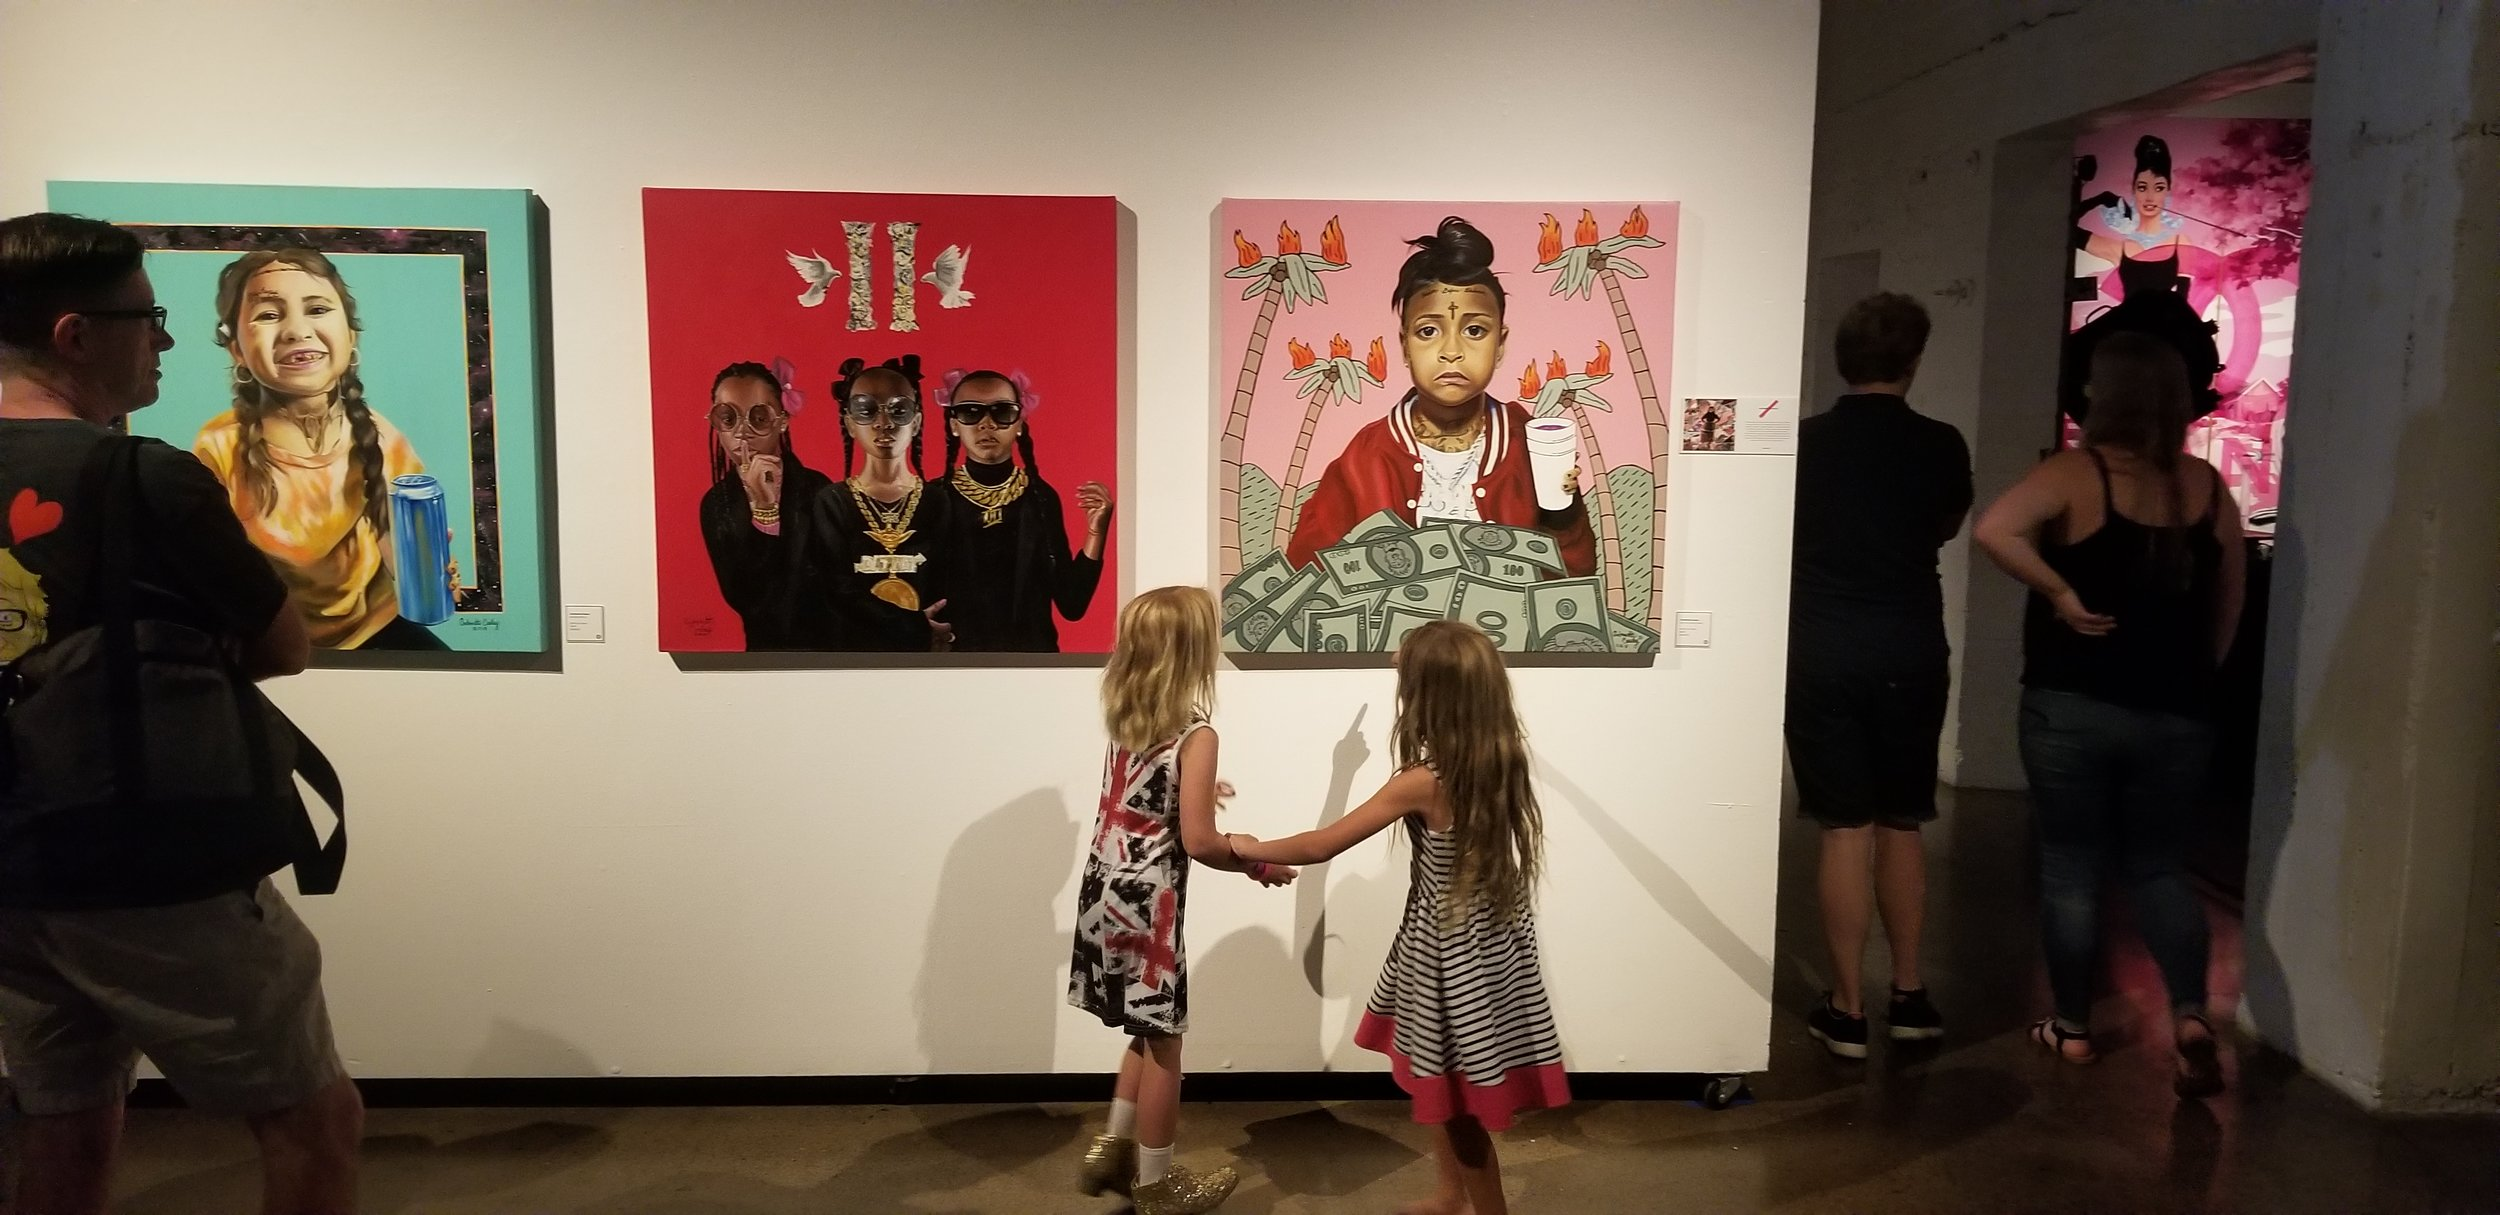 """The opening nght of """"The Coterie Exhibition"""" at the monOrchid. This exhibition features selected works from all seven of the monOrchids represented artists and is open to the public through Sptember 7th 2018."""